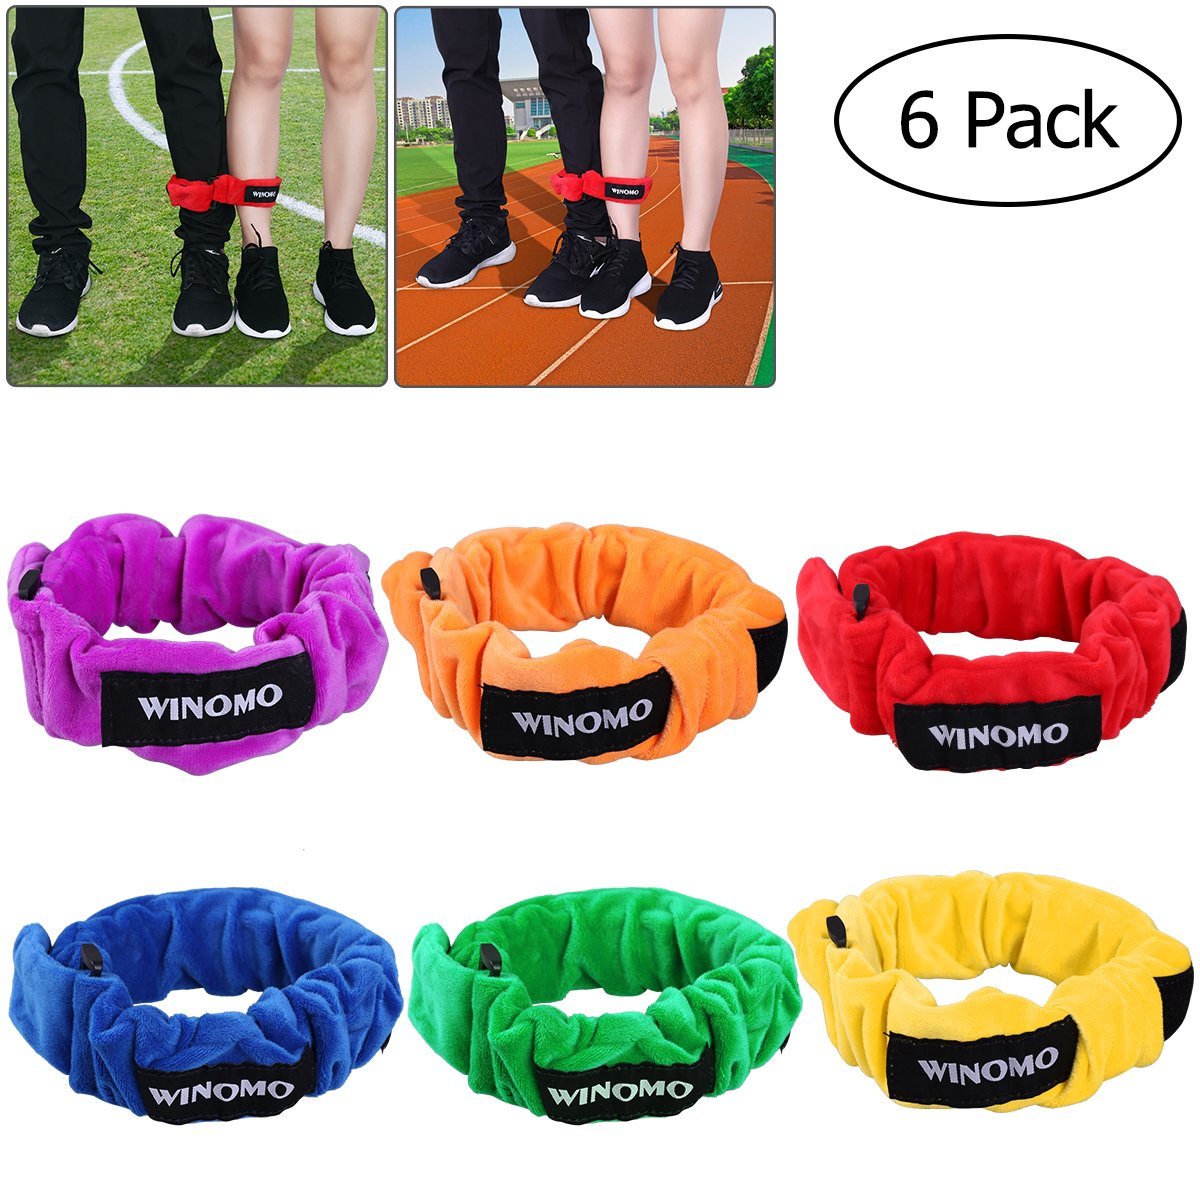 WINOMO 6 Pack 3-Legged Race Bands Elastic Tie Rope Straps for Kids Legged Race Game